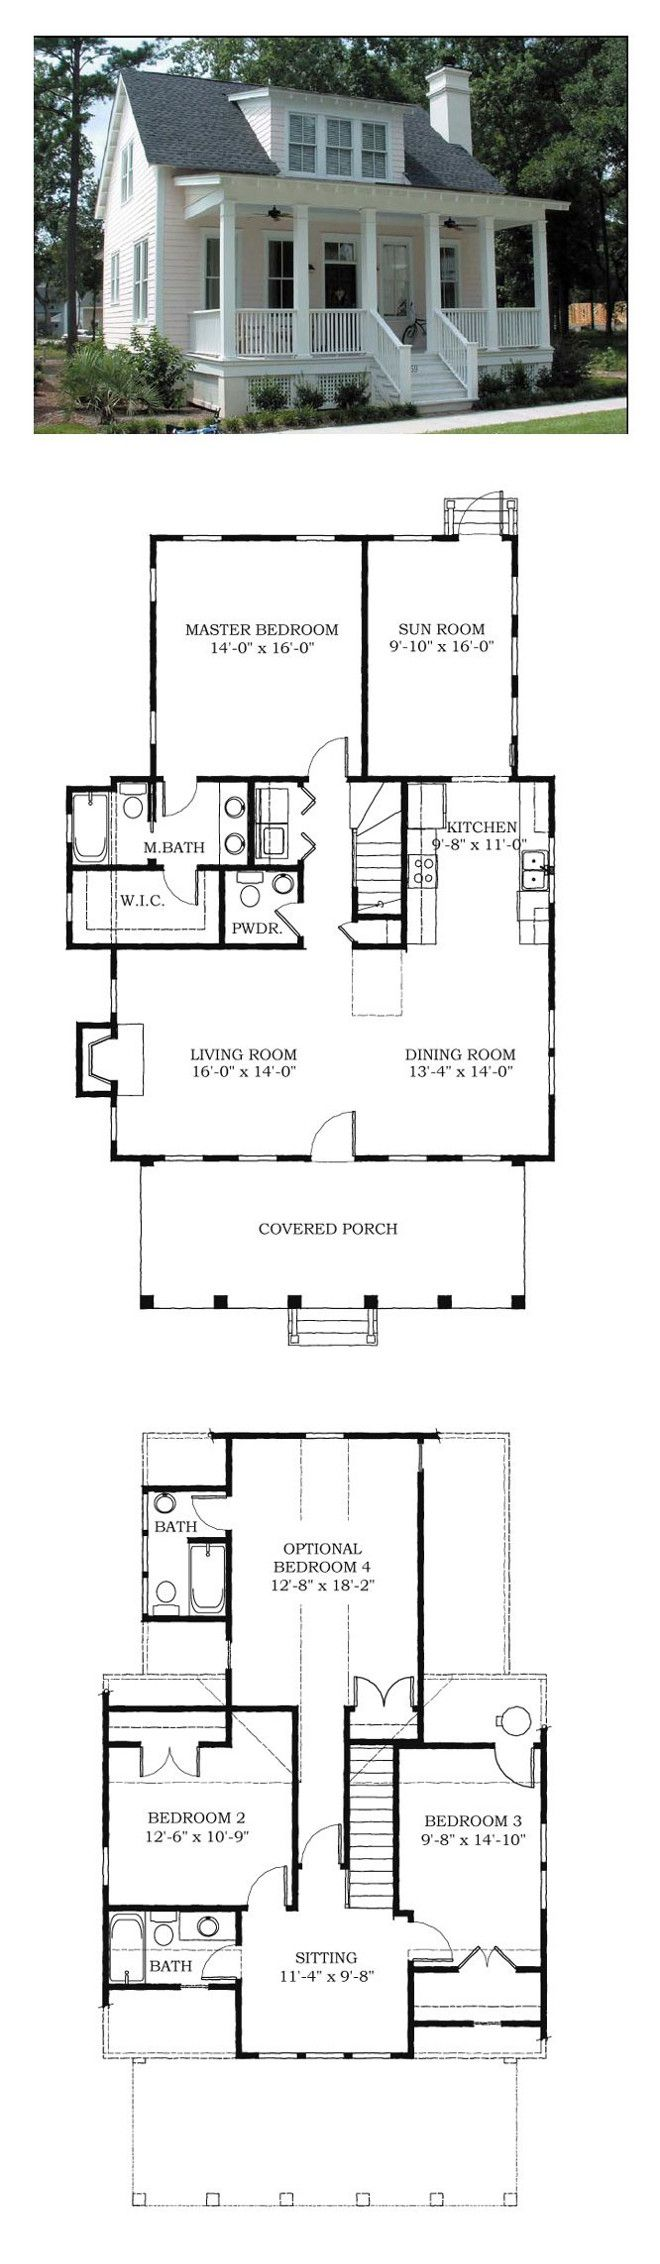 tinyhouse smallhome tinyhome tinyhouseplans Cottage floor plans